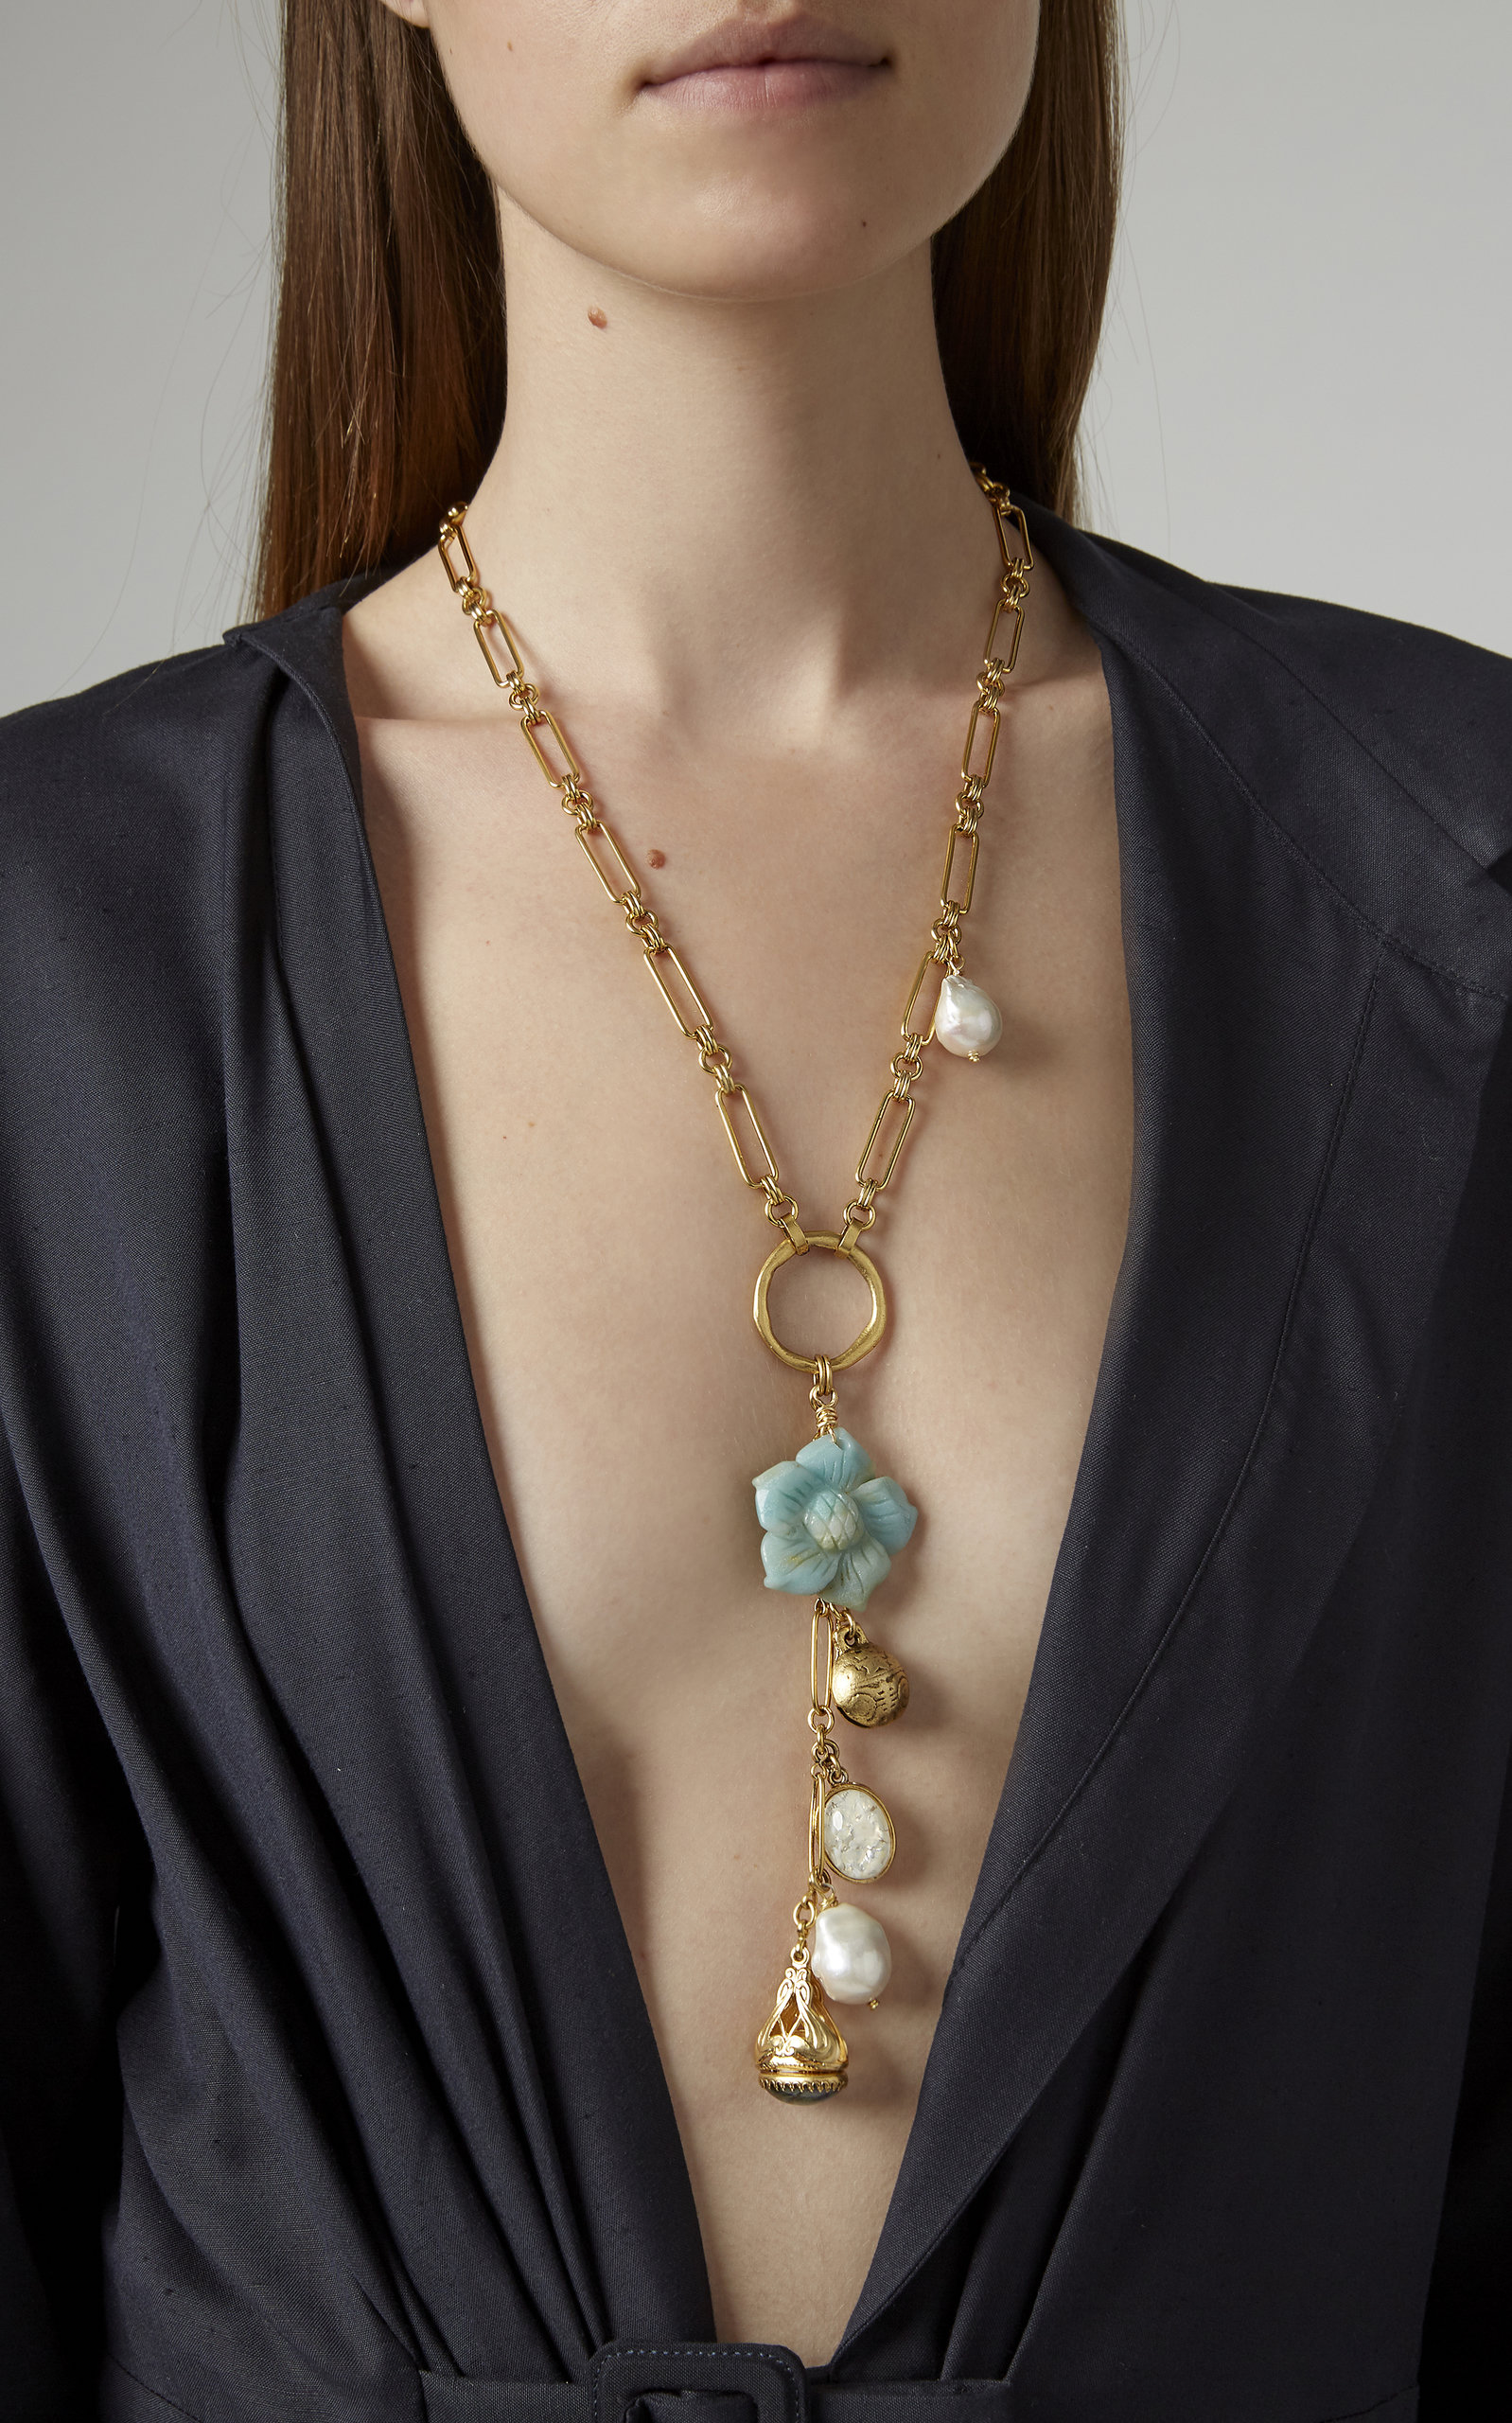 Jubilee 24K Gold-Plated Shell, Crystal and Pearl Necklace